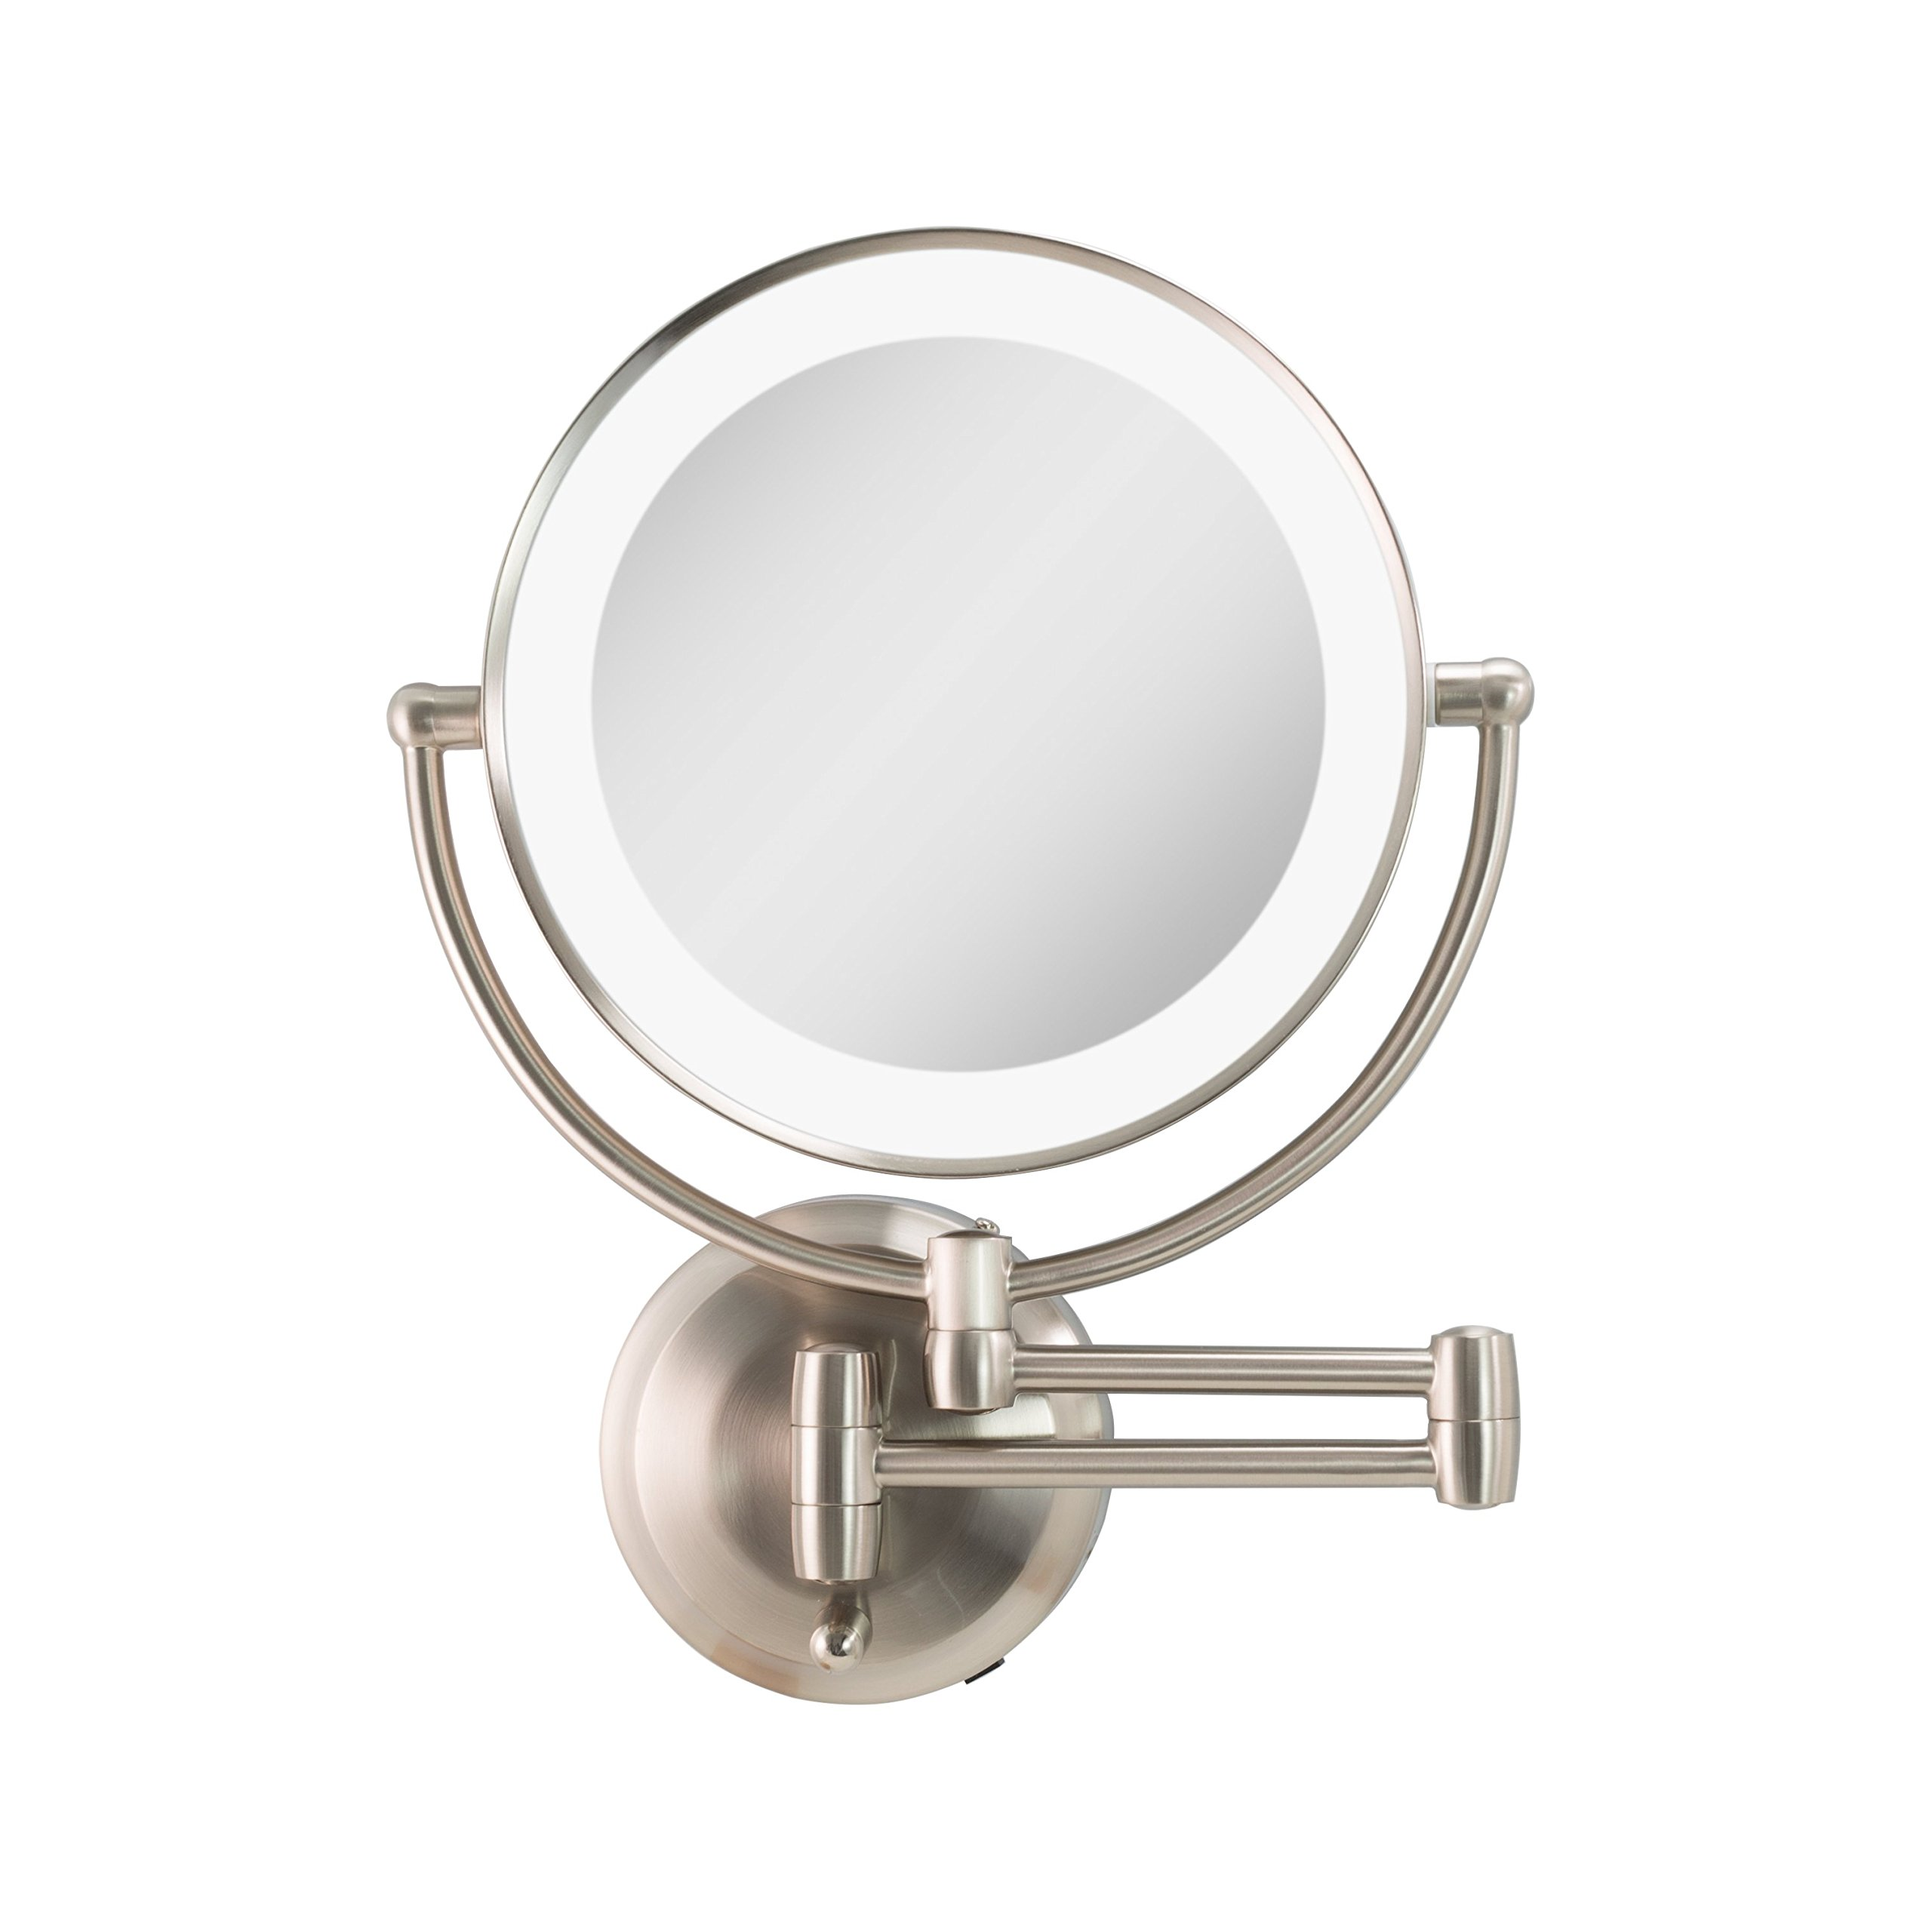 Zadro Cordless Dual LED Lighted Round Wall Mount Mirror with 1X & 5X magnification in Satin Nickel Finish.